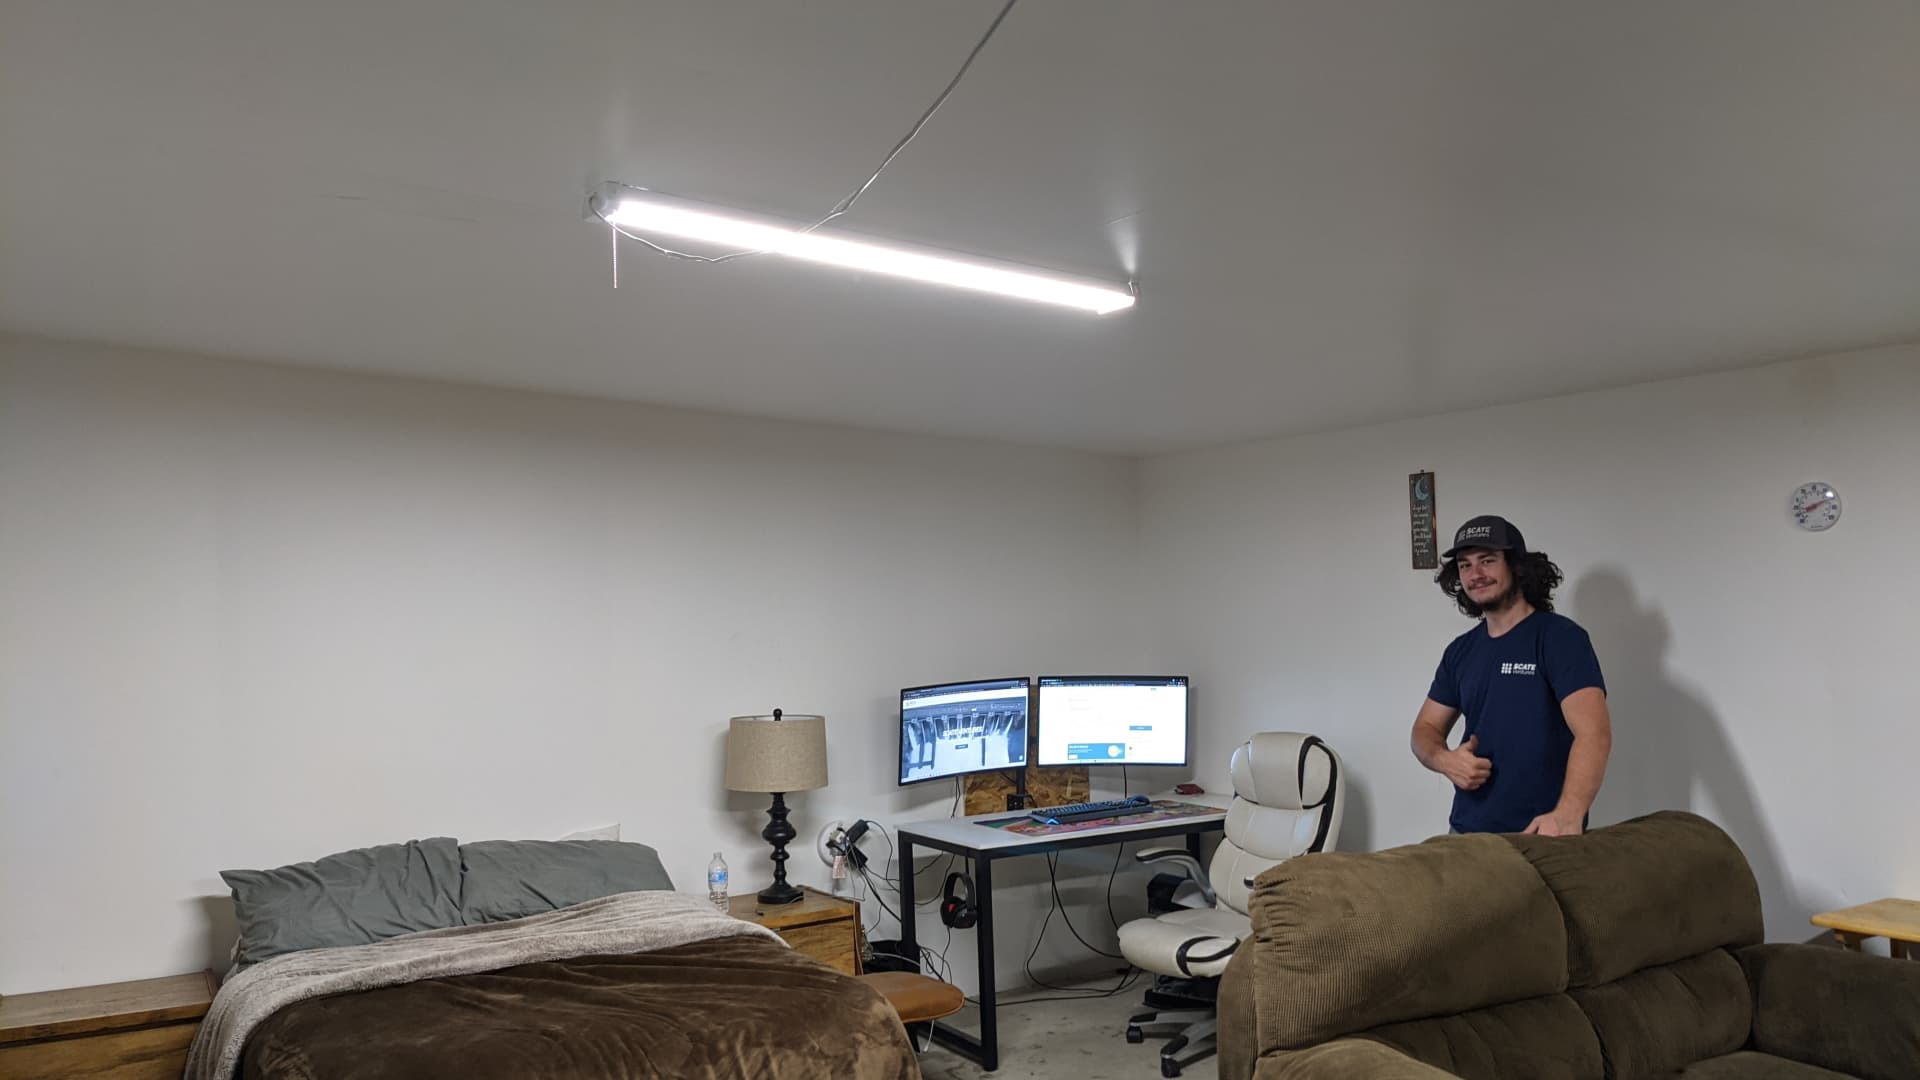 Bitcoin miner Nick Sears lives on-site at the SCATE Ventures mining farm in Dallesport, Washington.